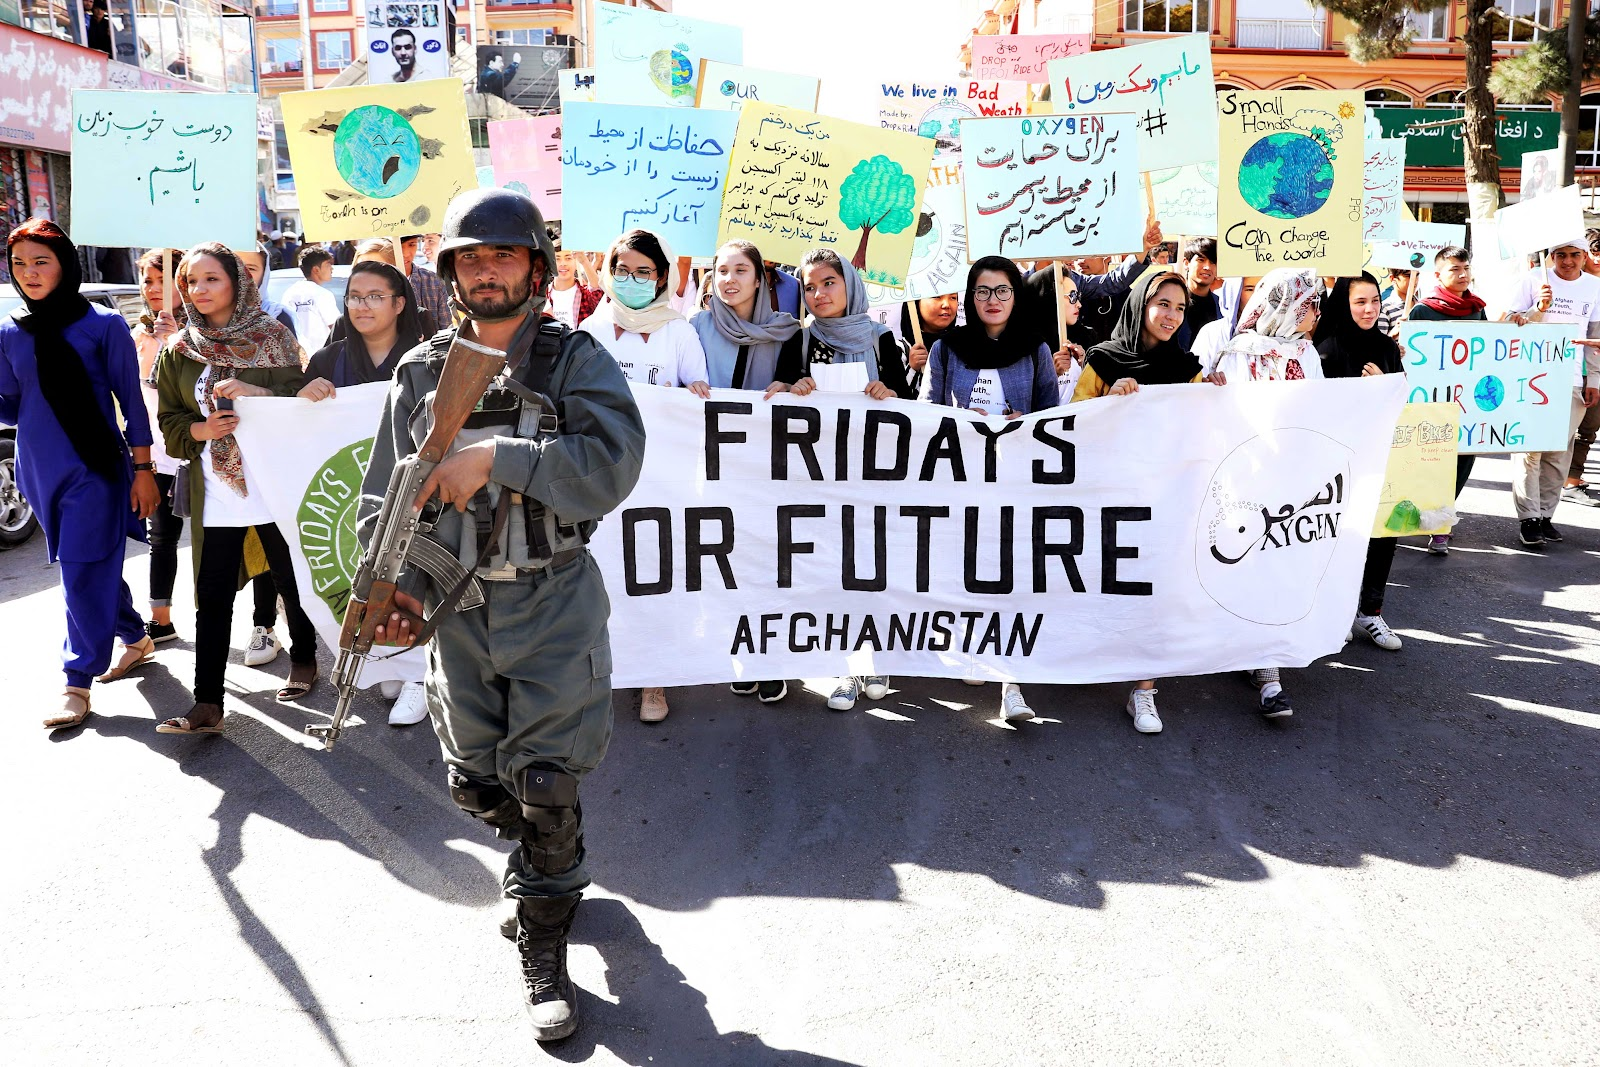 Young women leading a Fridays for Future march in Afghanistan, with a soldier at the front of the group.